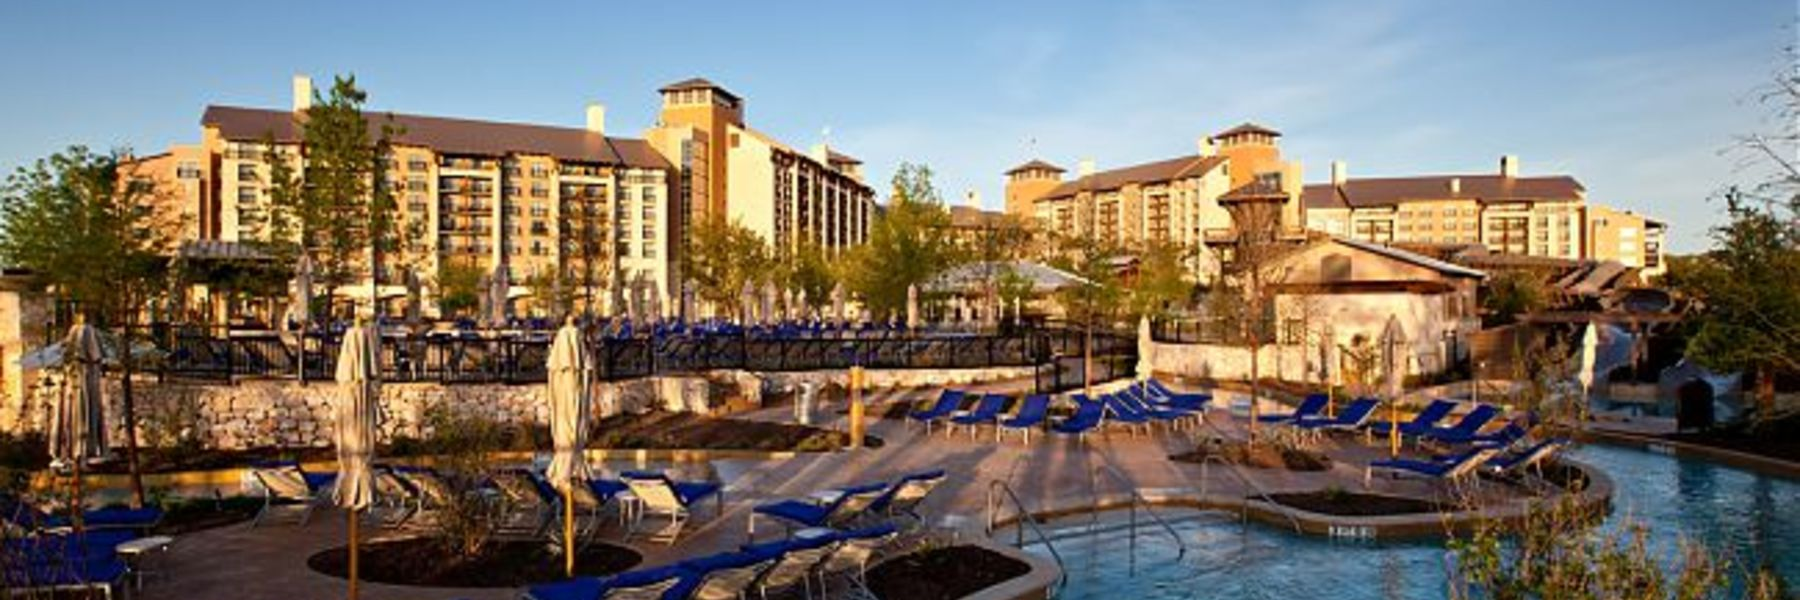 Golf Vacation Package - J.W. Marriott San Antonio - Stay and Play before the Valero Open for $319!